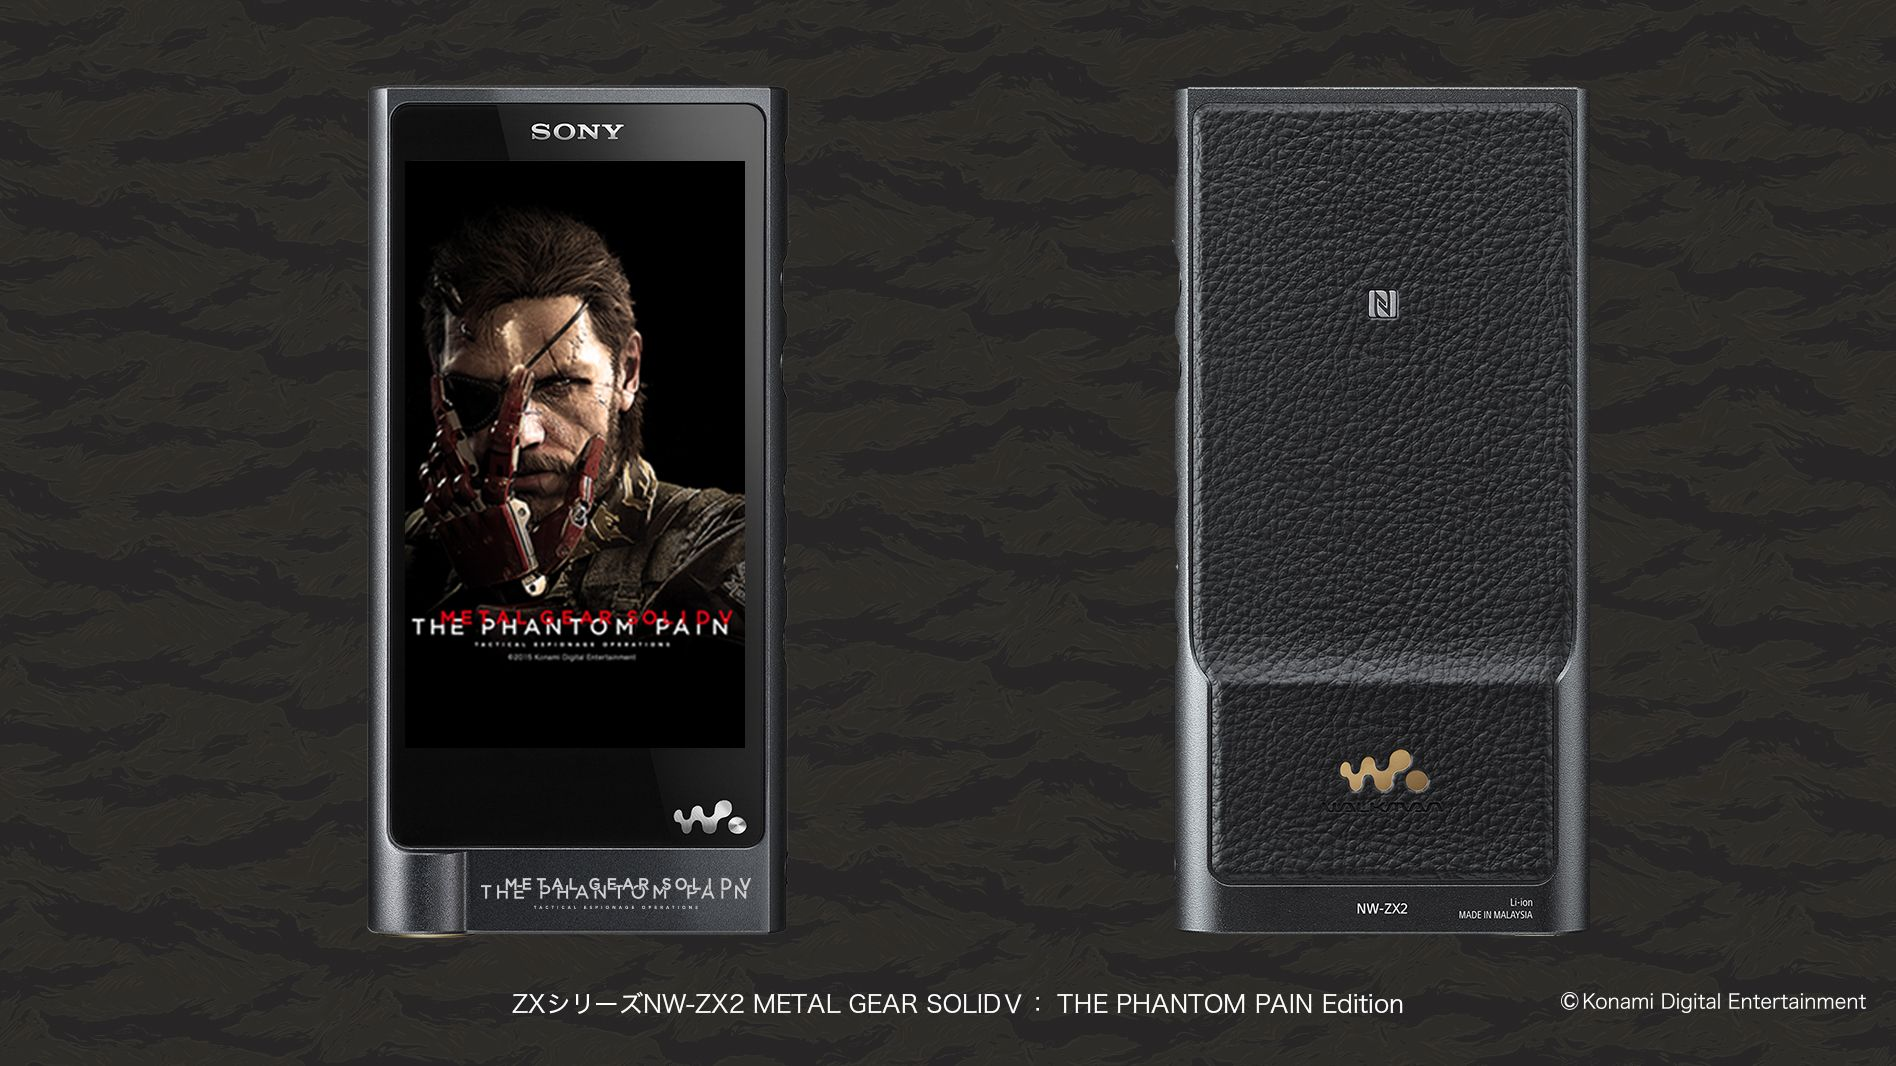 Gallery_WALKMAN_ZX2_A16_mgs_2